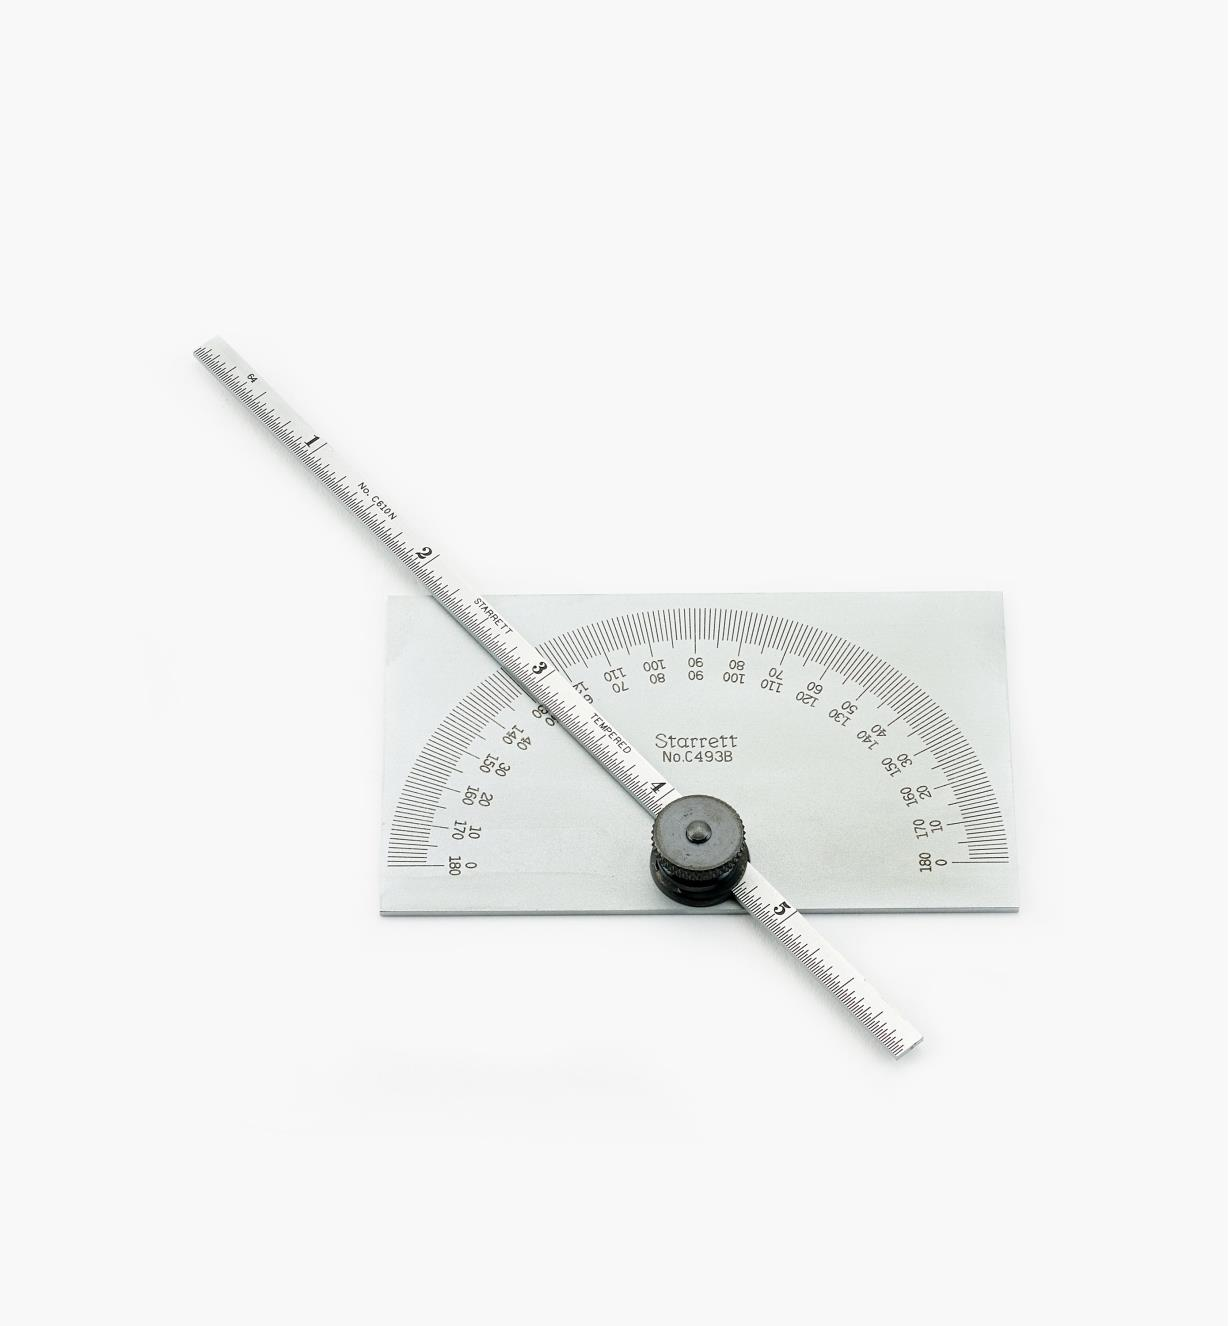 30N0420 - Protractor with Depth Gauge